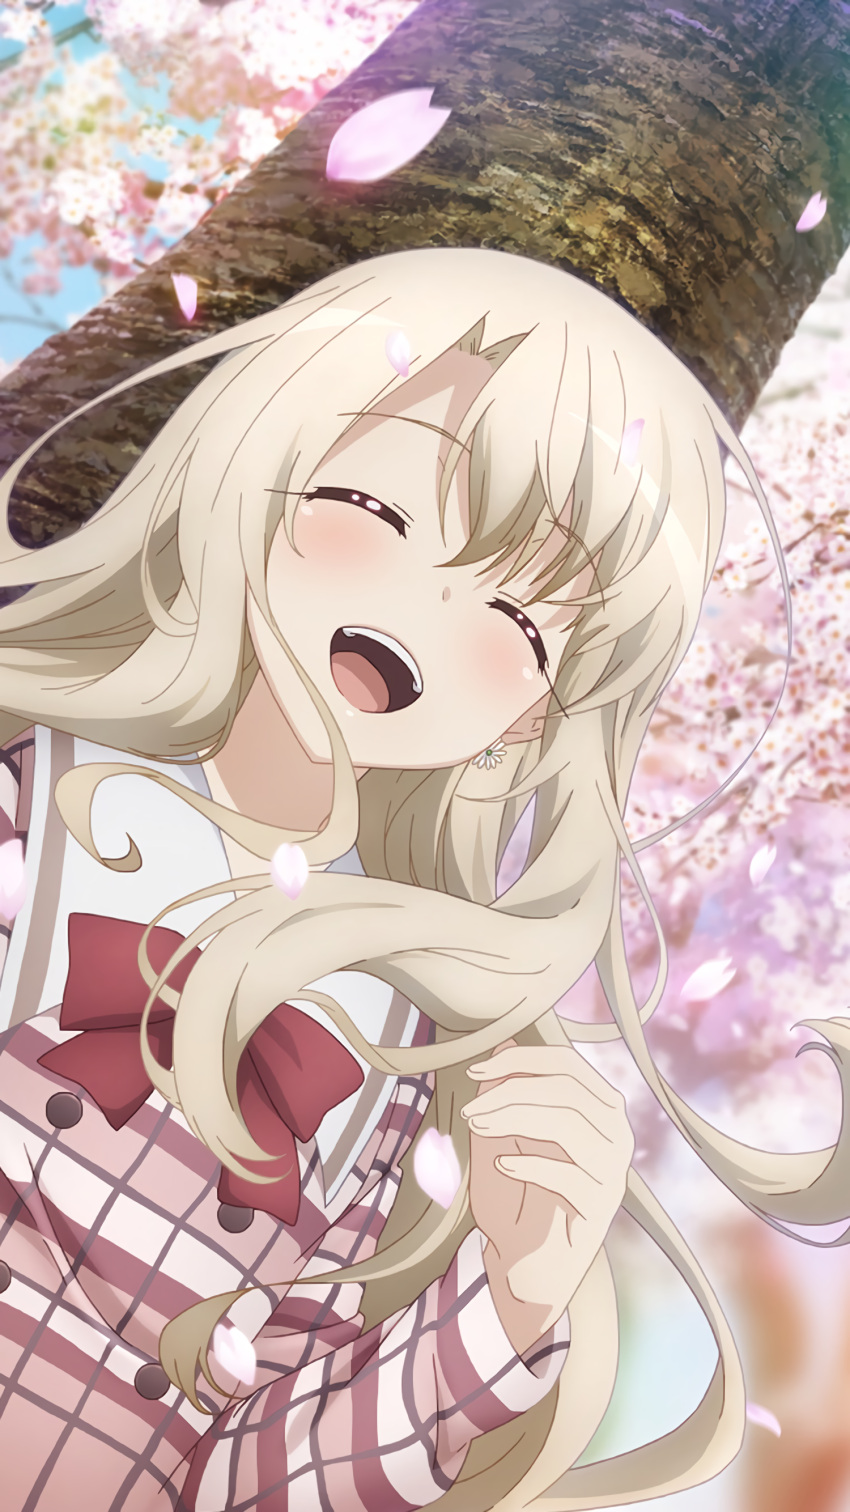 1girl :d absurdres against_tree bow bowtie cherry_blossoms closed_eyes day dutch_angle eyebrows_visible_through_hair fate/kaleid_liner_prisma_illya fate_(series) floating_hair from_below highres illyasviel_von_einzbern long_hair long_sleeves official_art open_mouth outdoors petals plaid plaid_shirt red_bow red_neckwear sailor_collar shiny shiny_hair shirt silver_hair smile solo tree upper_body very_long_hair white_sailor_collar